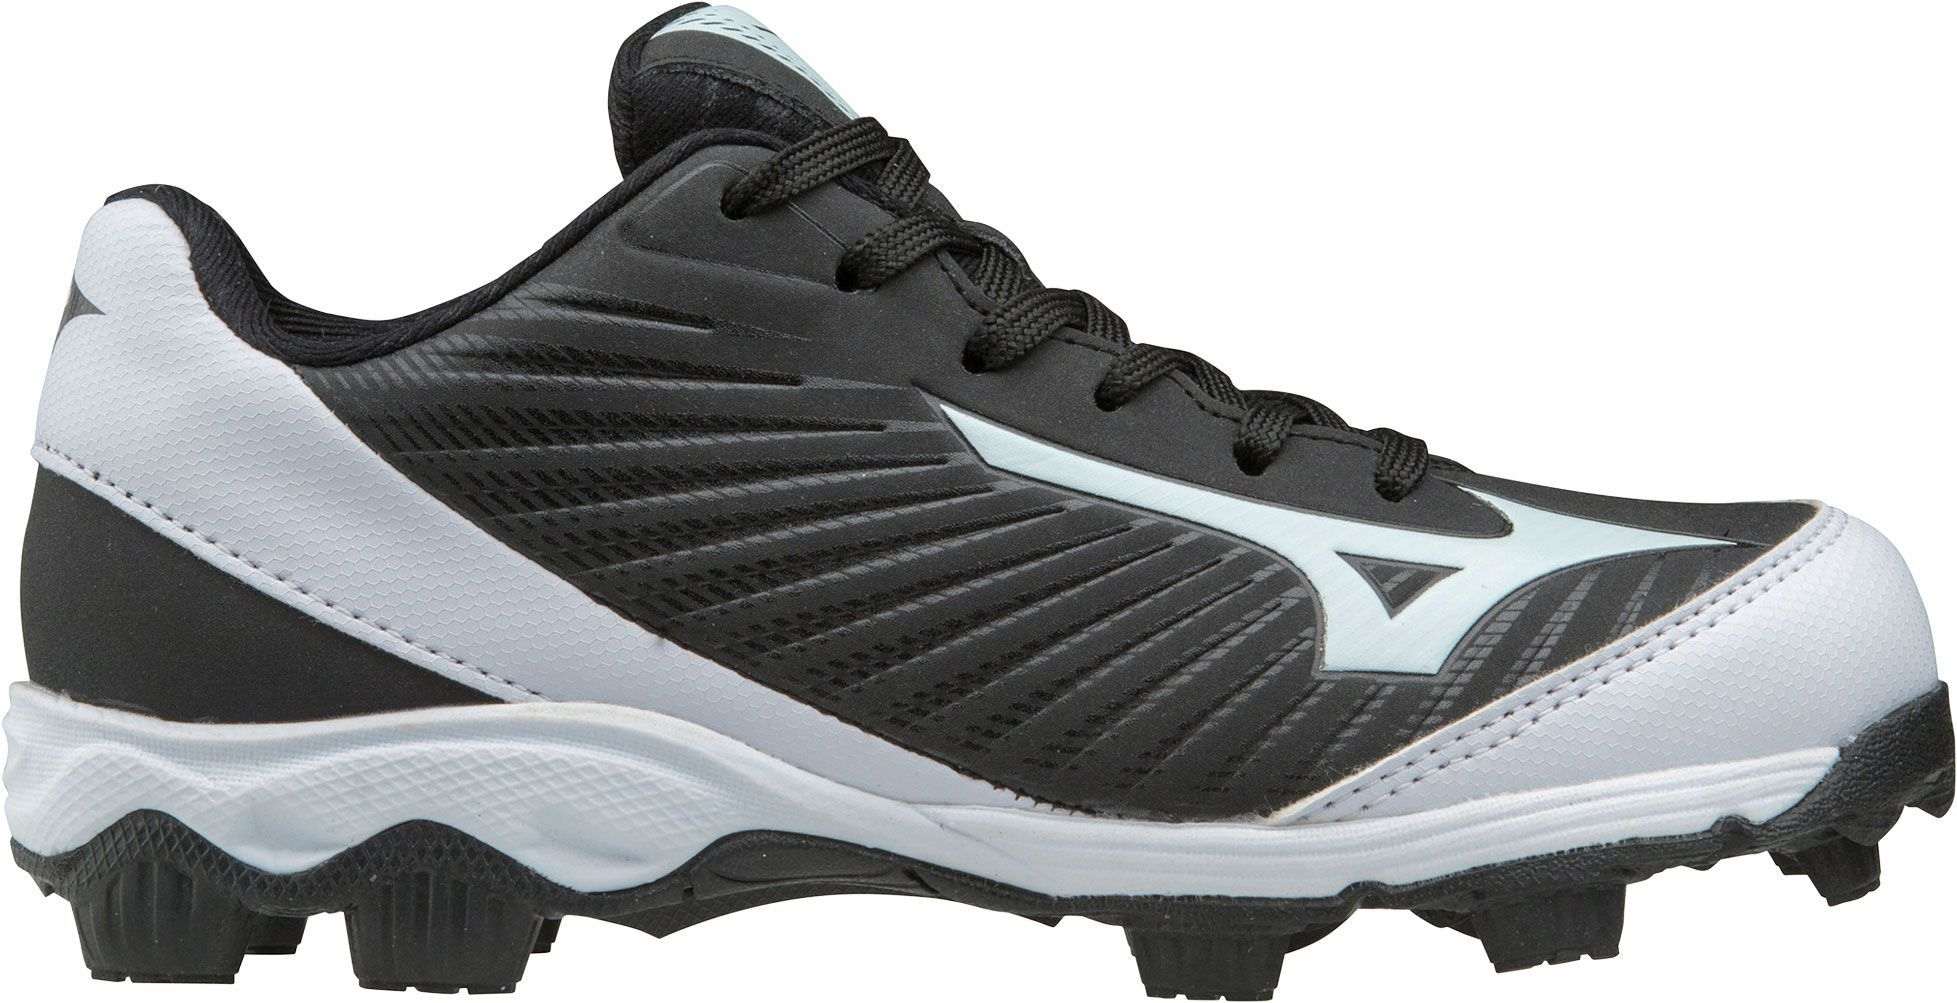 mens mizuno running shoes size 9.5 in us near